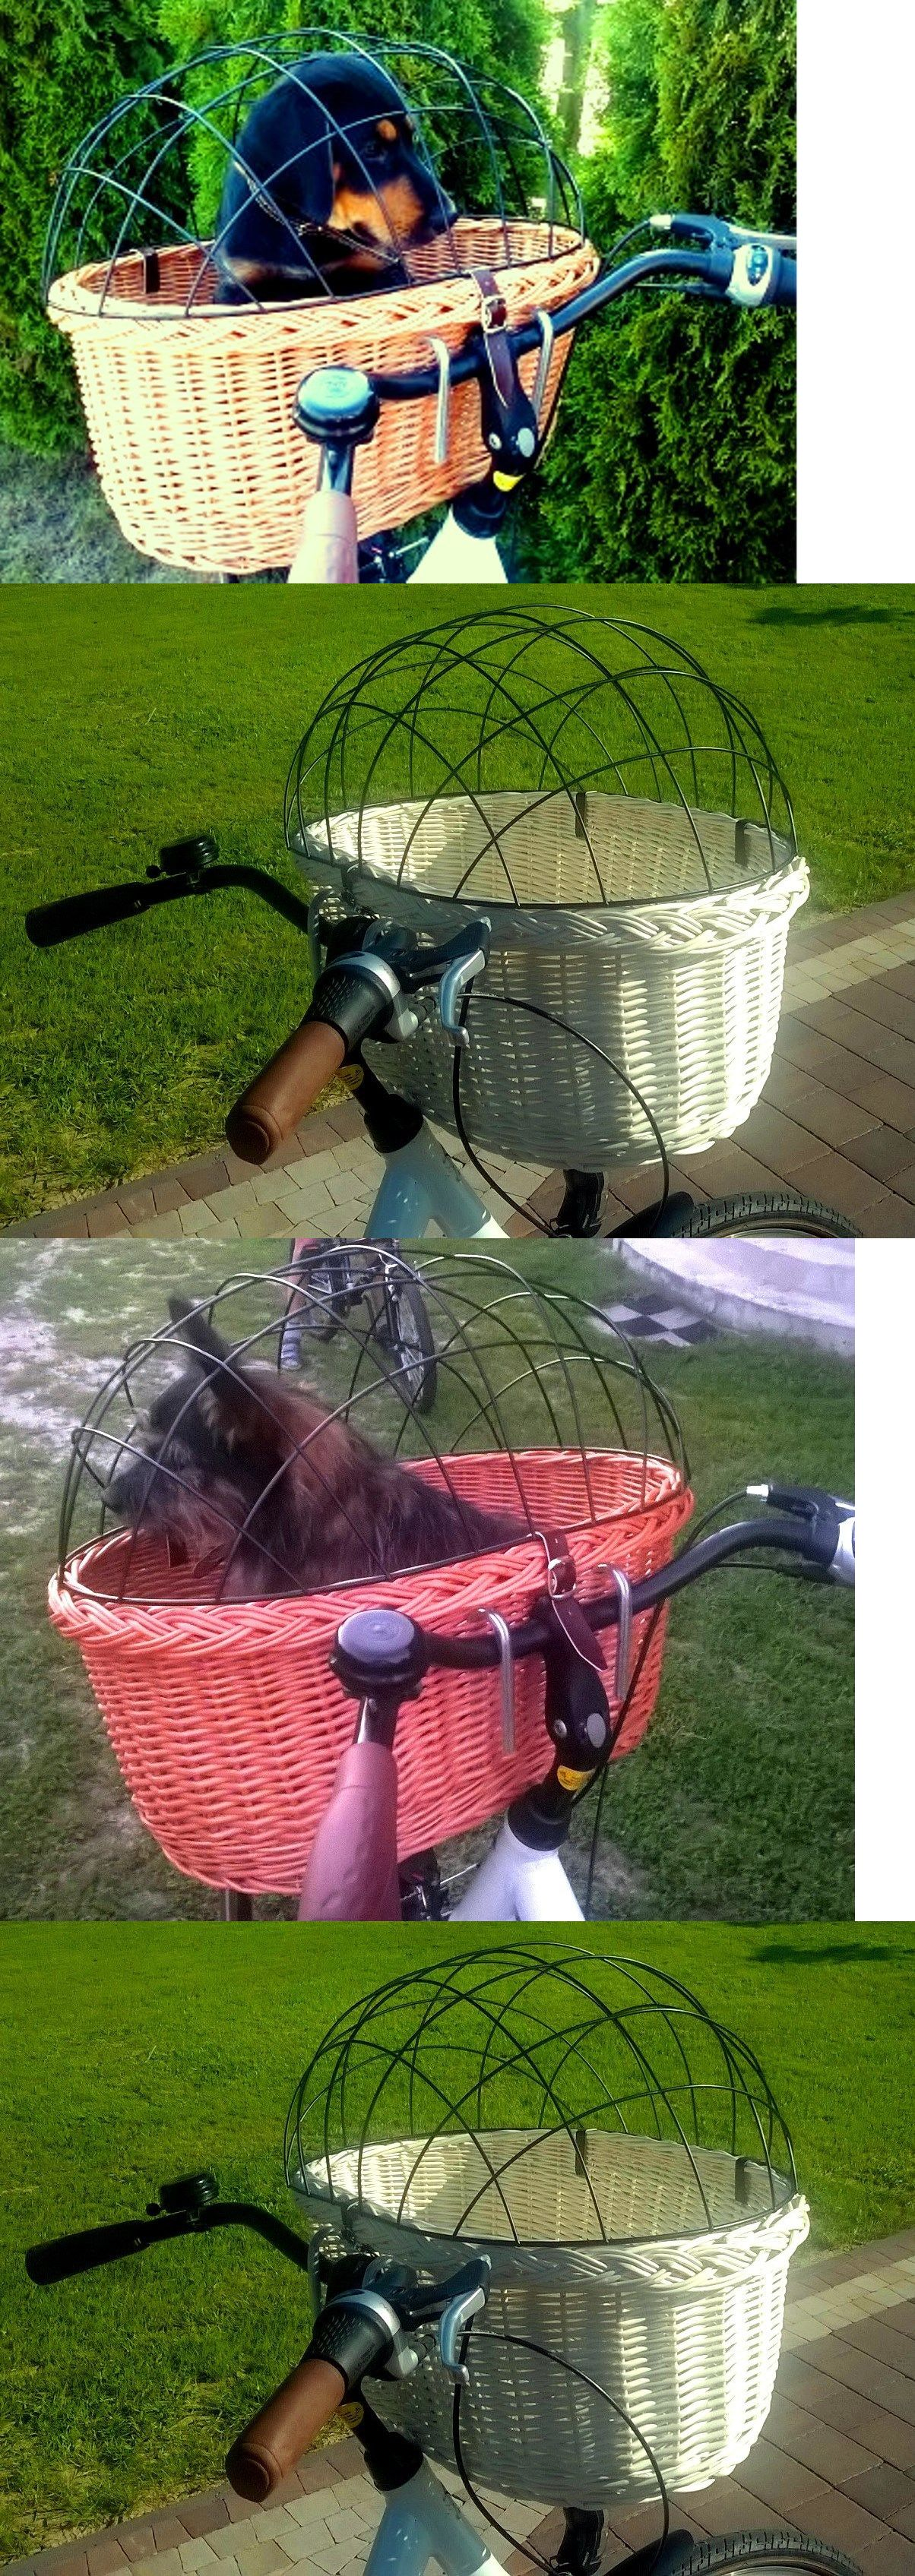 Xl dog basket bicycle handlebar wicker for cat front in